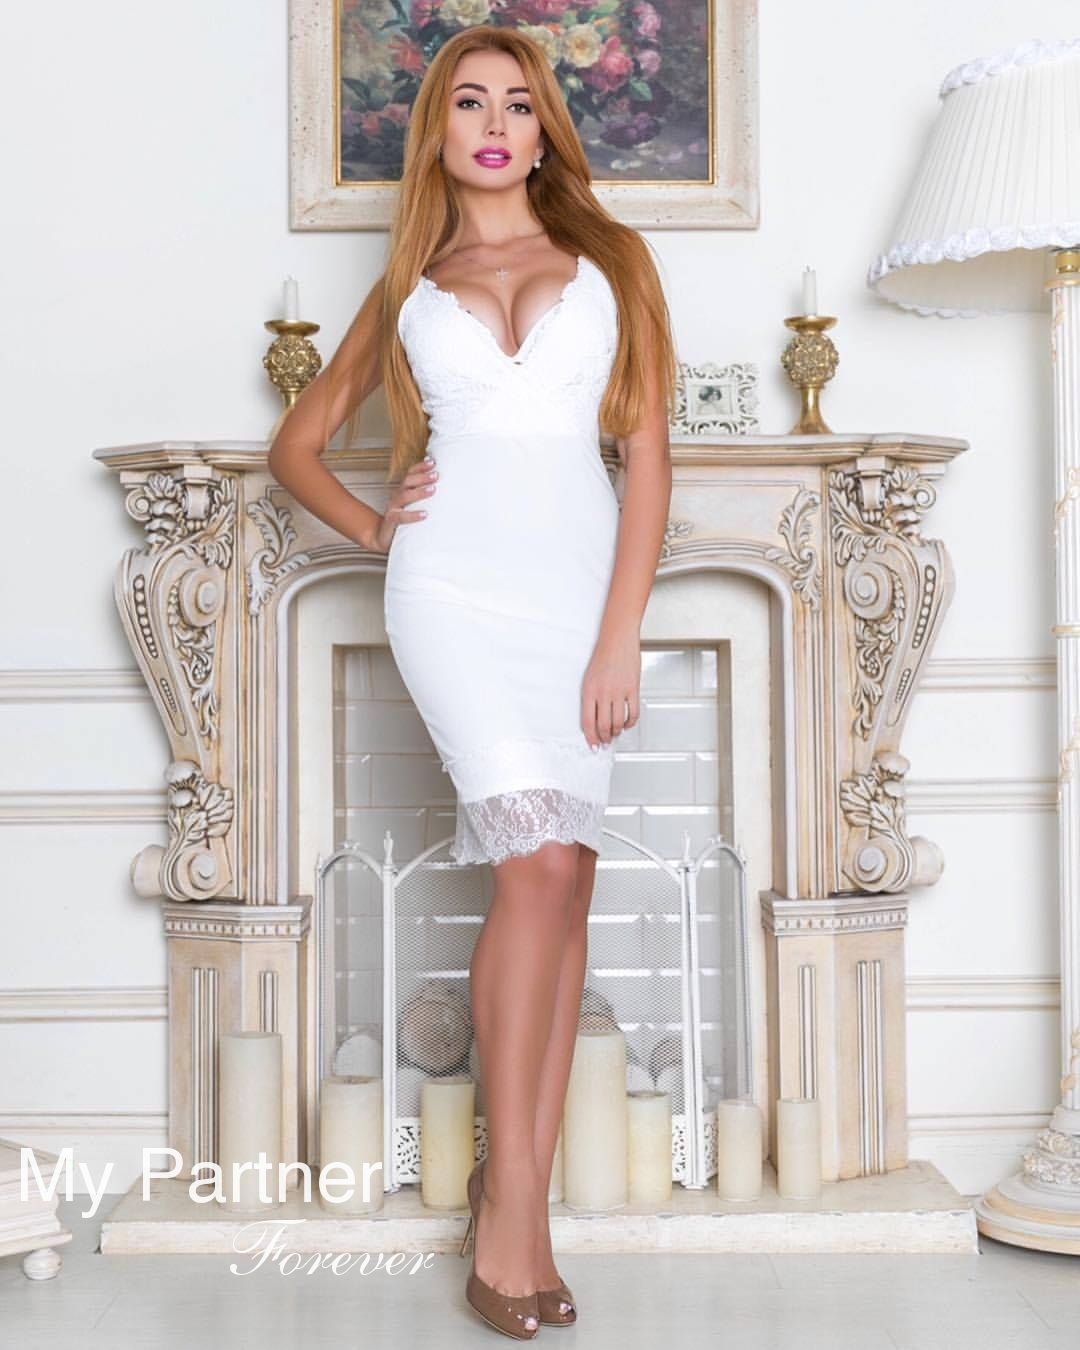 Dating with Stunning Ukrainian Lady Yuliya from Kiev, Ukraine